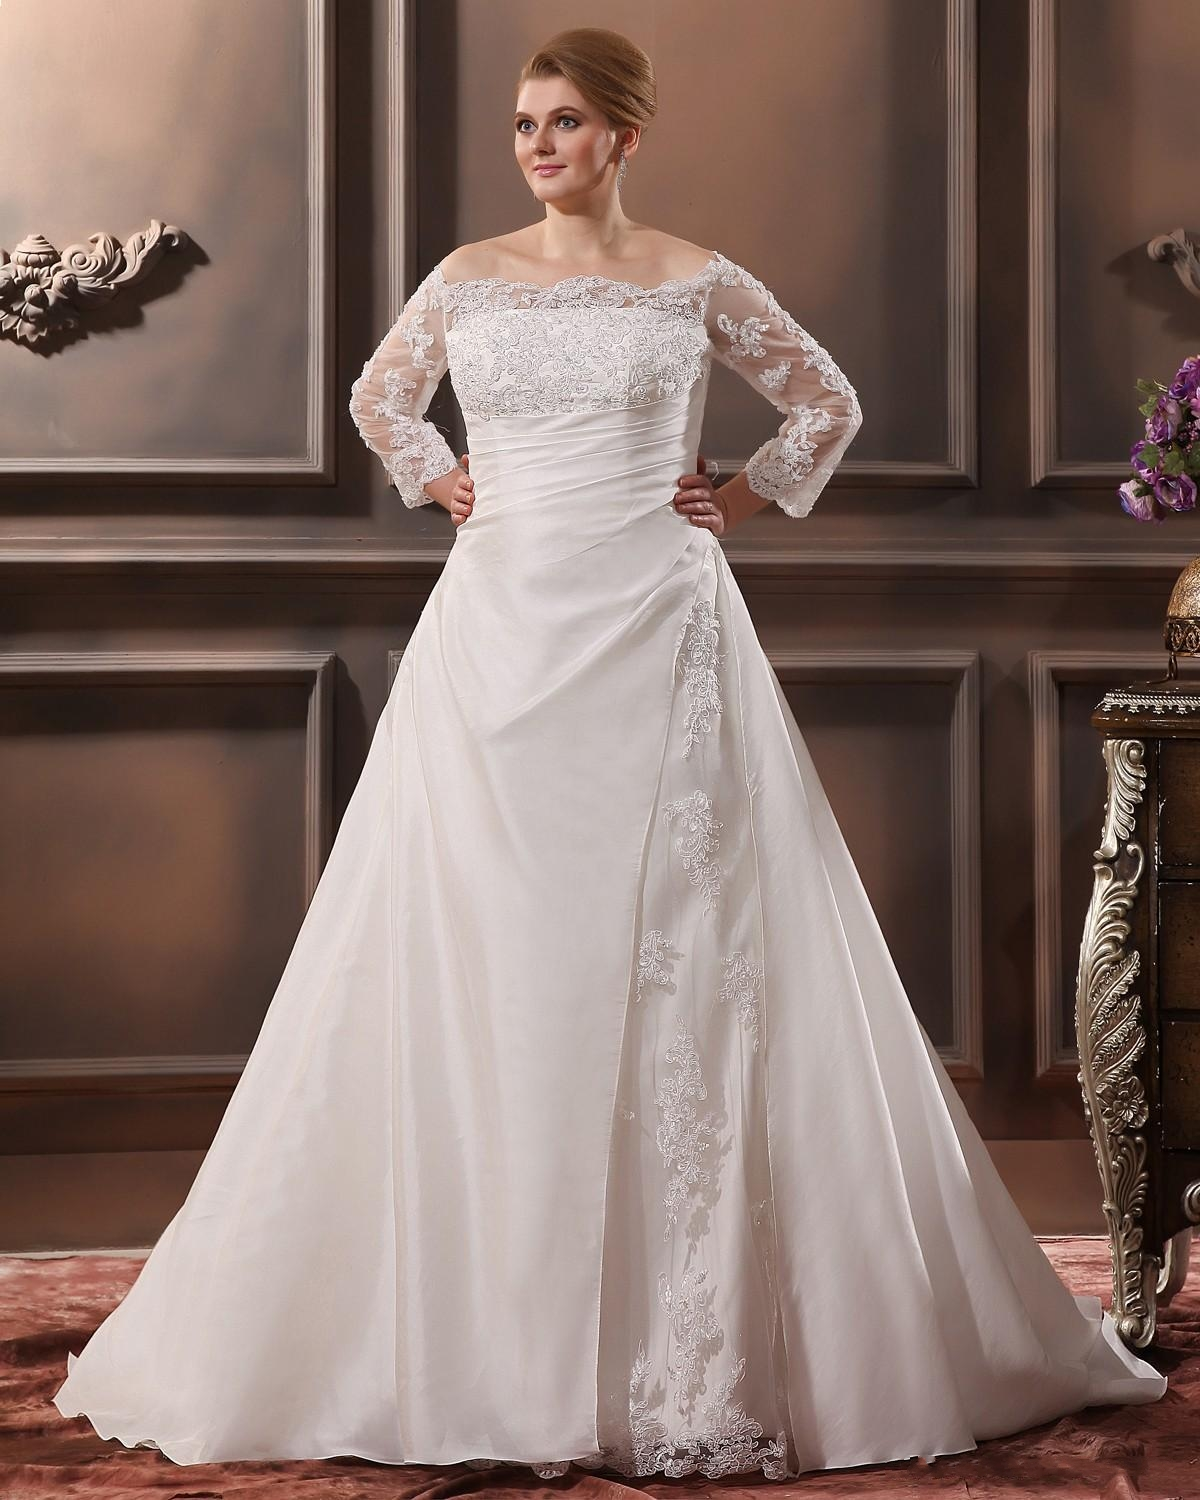 Plus Size Outfits For A Wedding